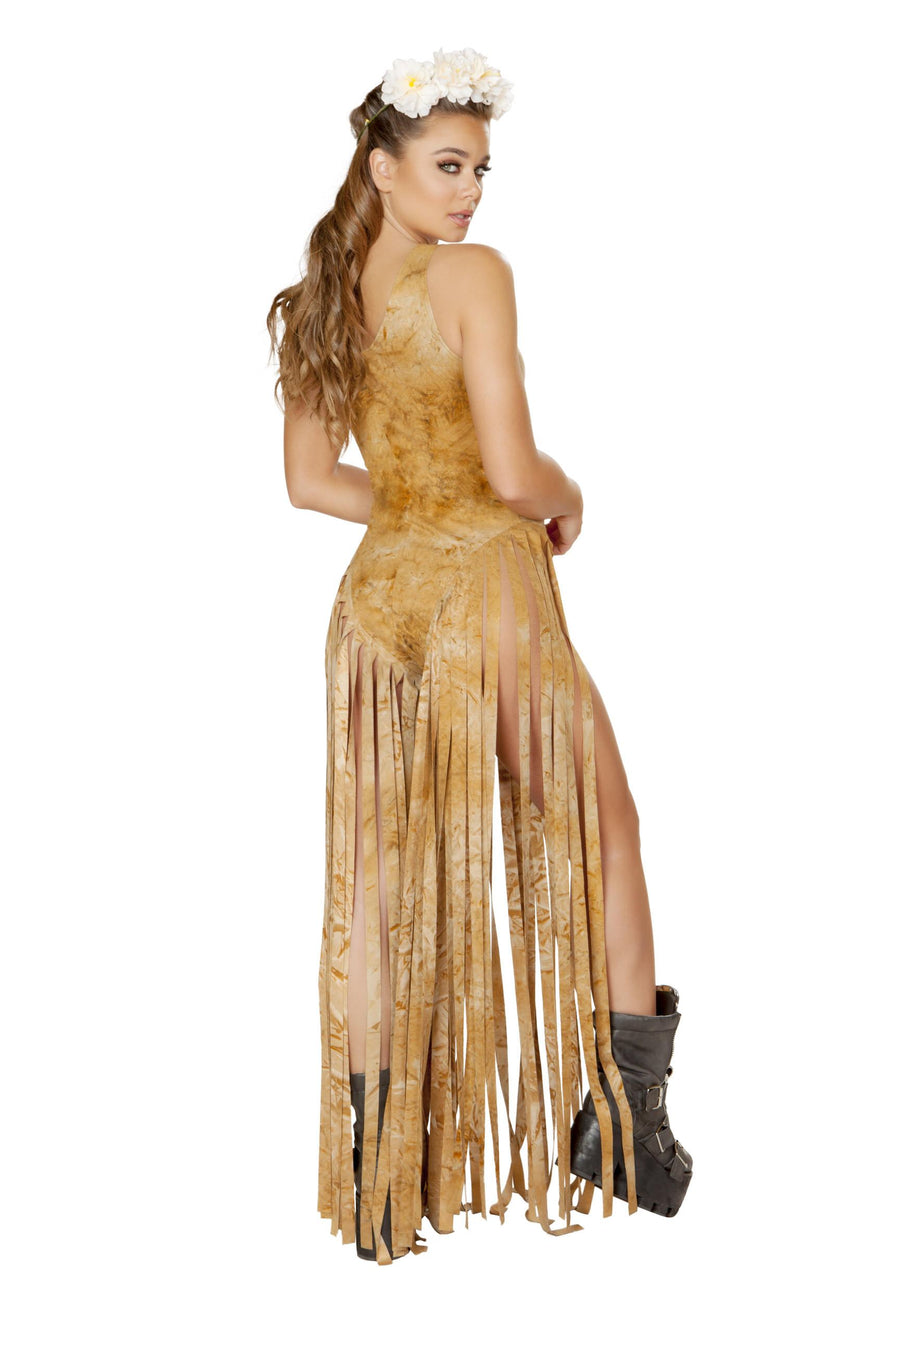 3536 - Bodysuit with Long Fringe